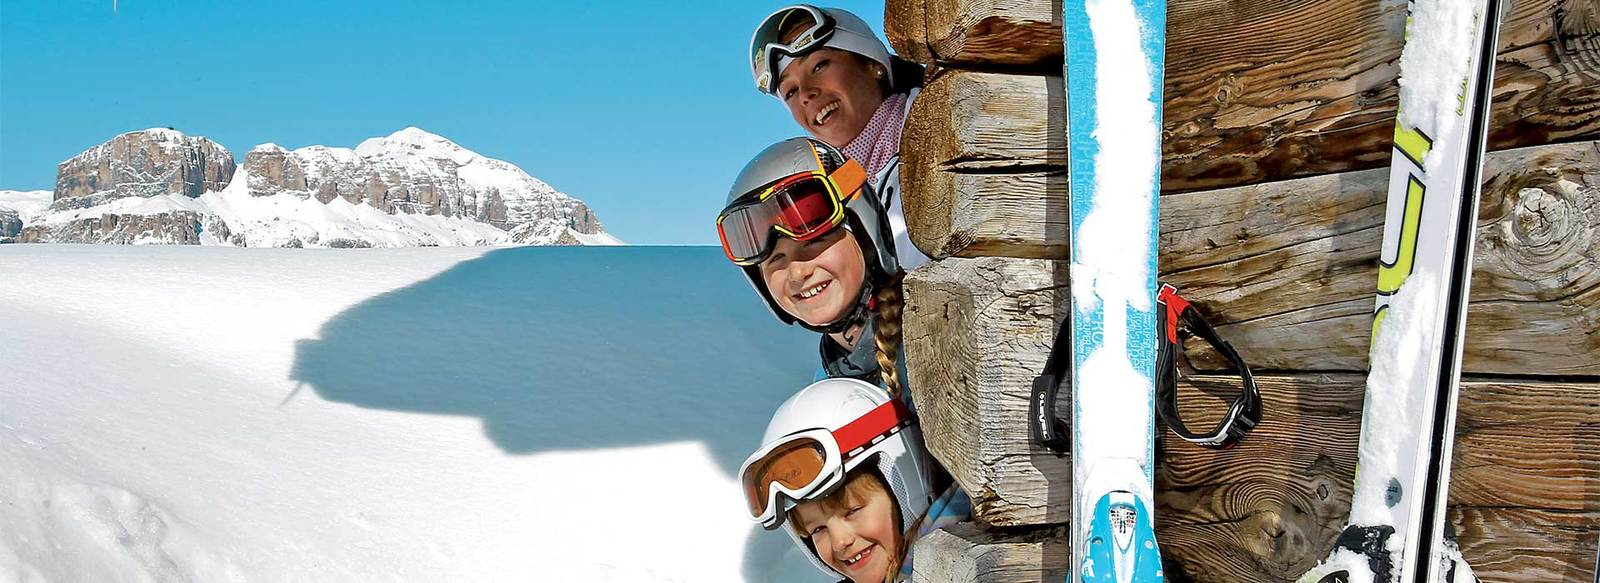 Family Hotel low cost in Val di Fassa